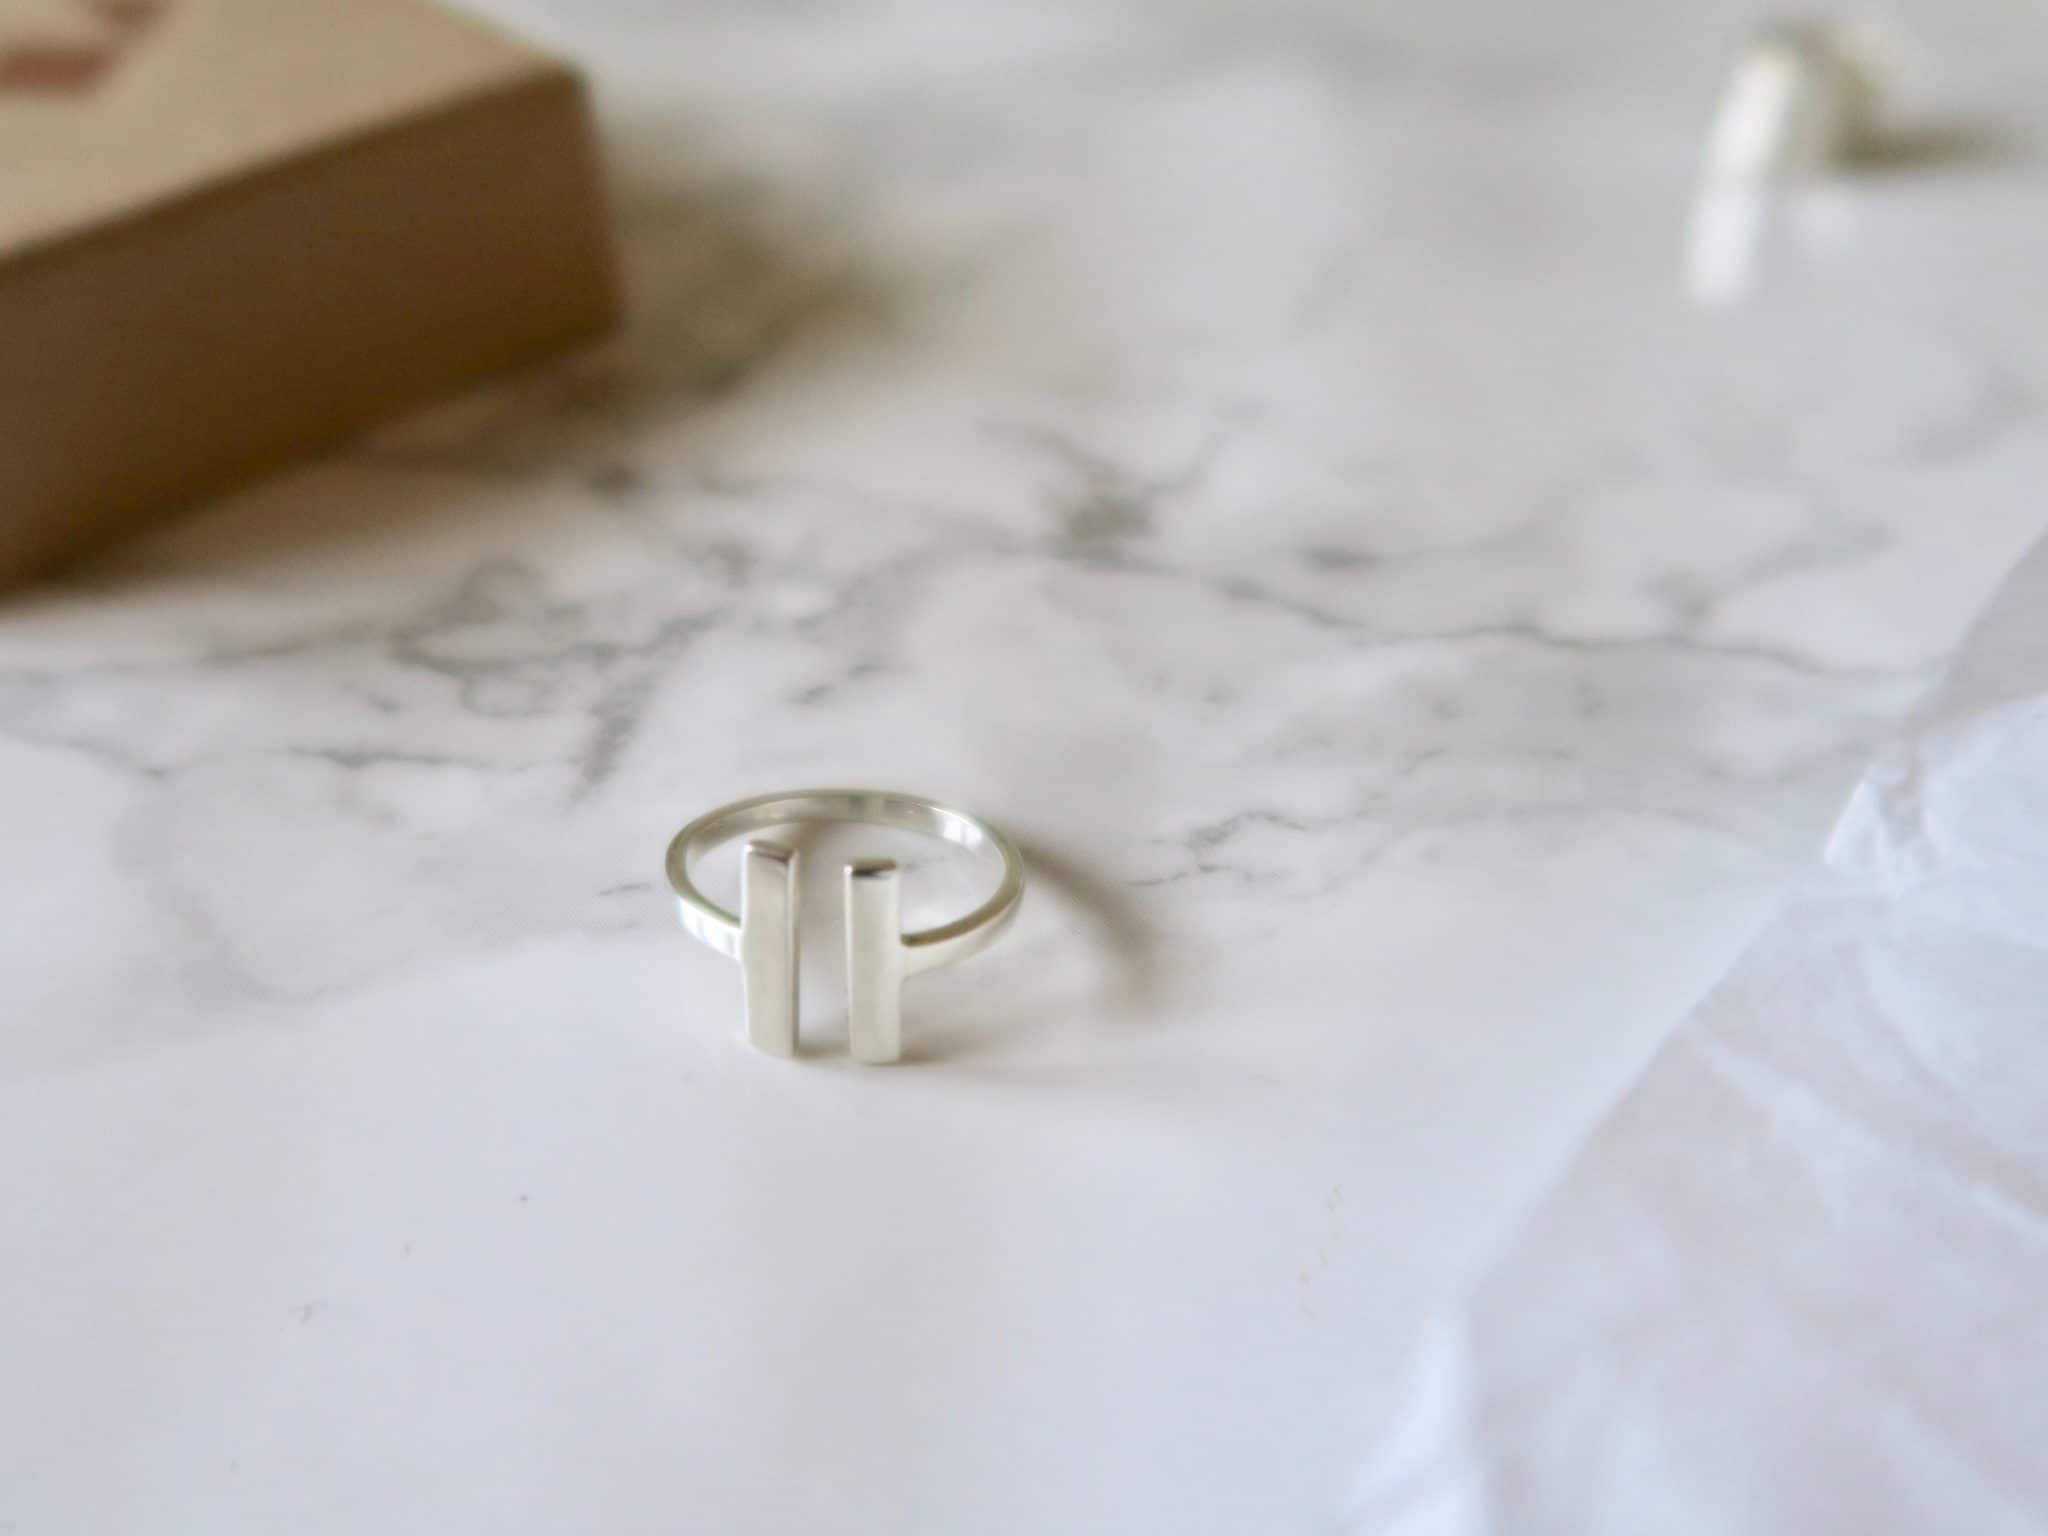 Puck Wanderlust Ethical Jewellery